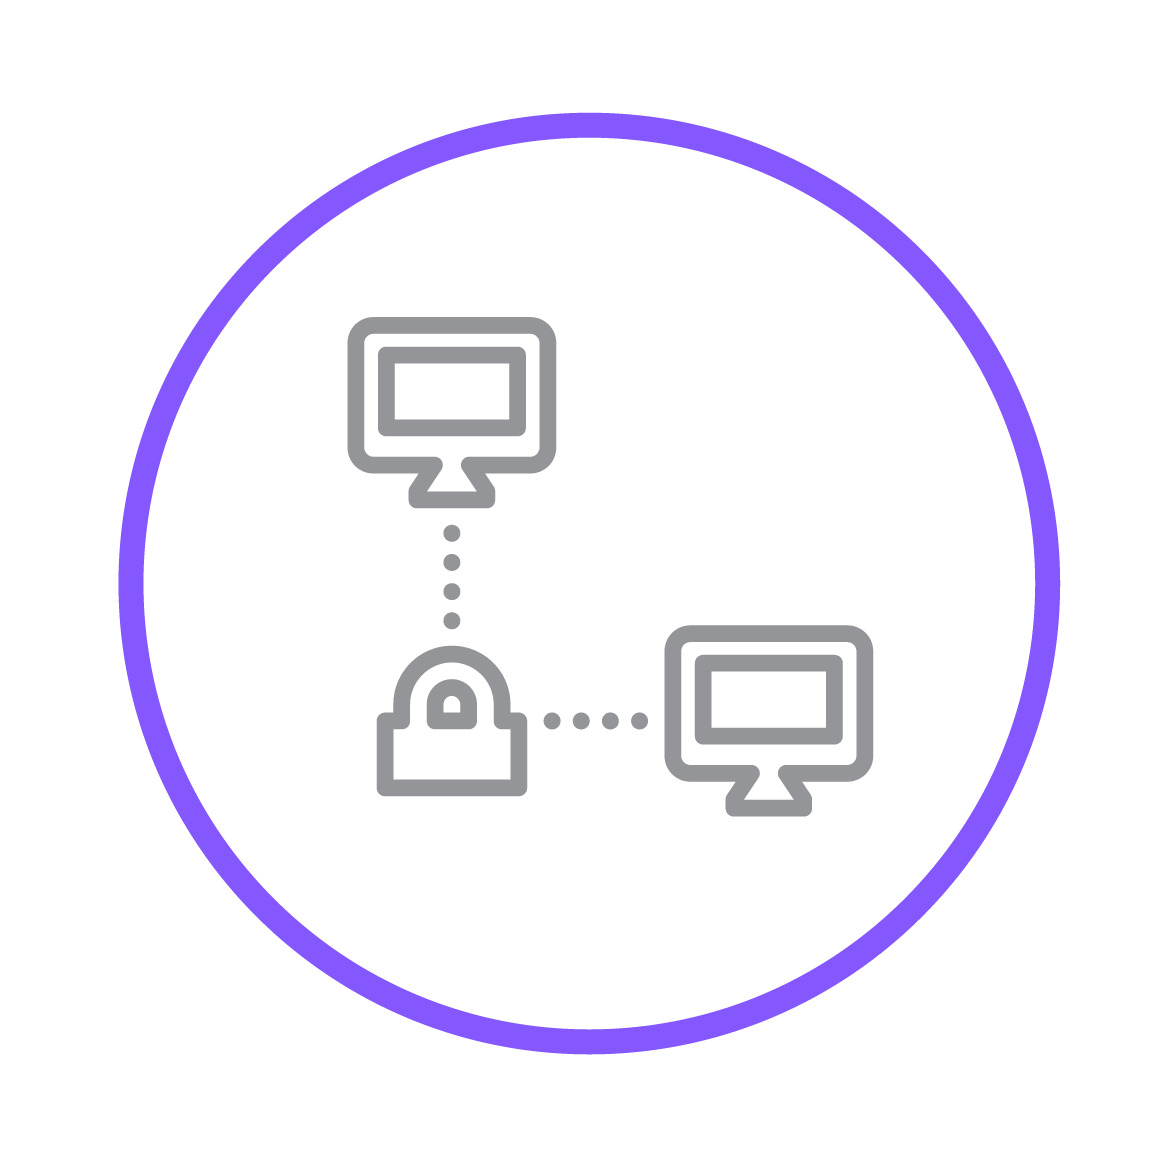 Secure wire transactions - Avoid the ever-growing threat of fraud and have peace of mind that you are sending and receiving funds from the correct clients with our secure wire instruction protocols.